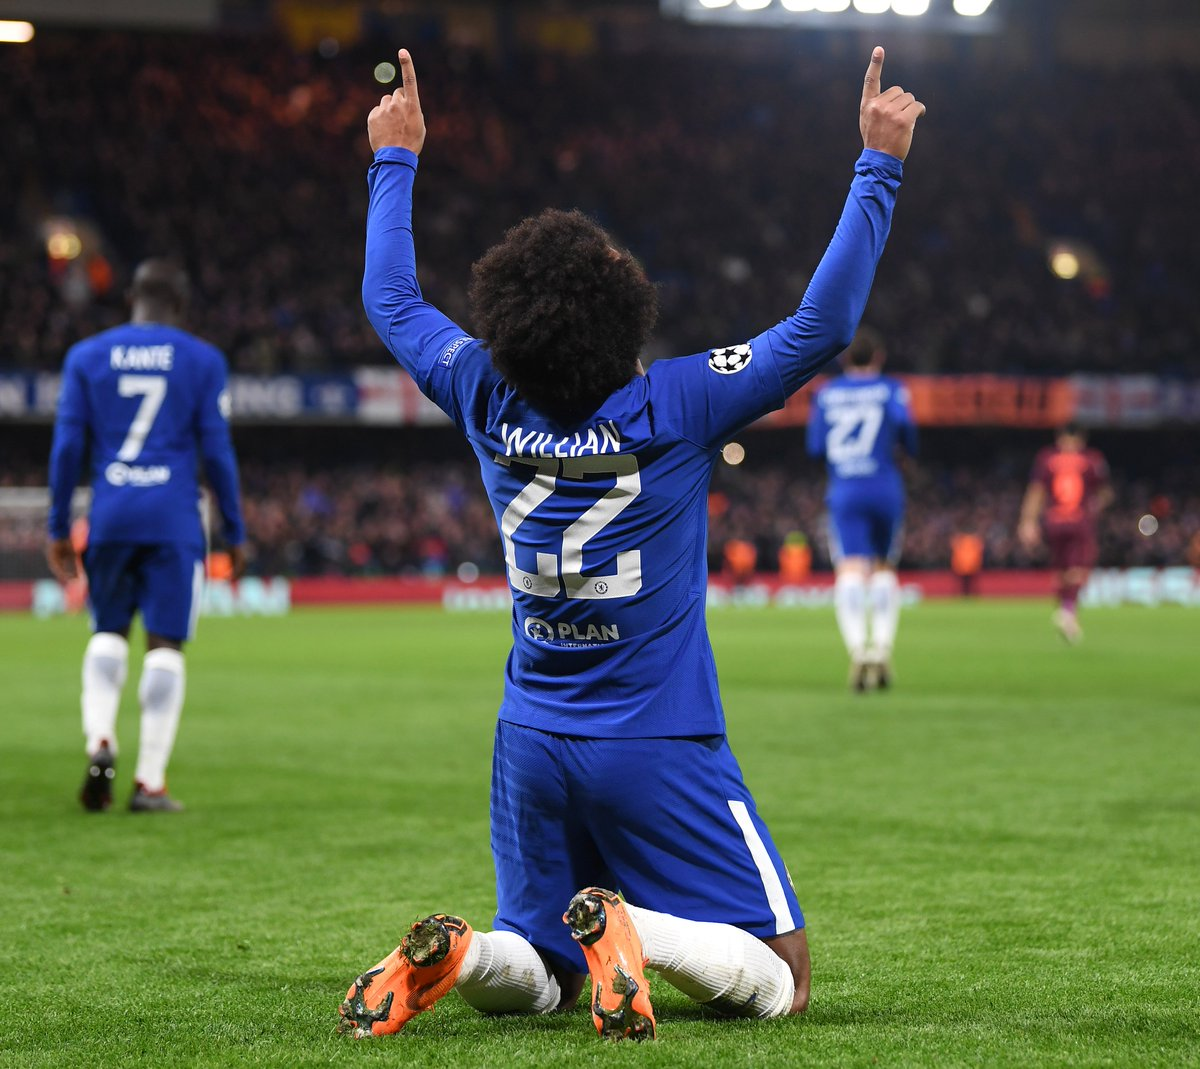 Full-time: Chelsea 1-1 Barcelona.   @willianborges88's excellent goal is cancelled out by Messi's low drive. All square at the Bridge. #CHEBAR